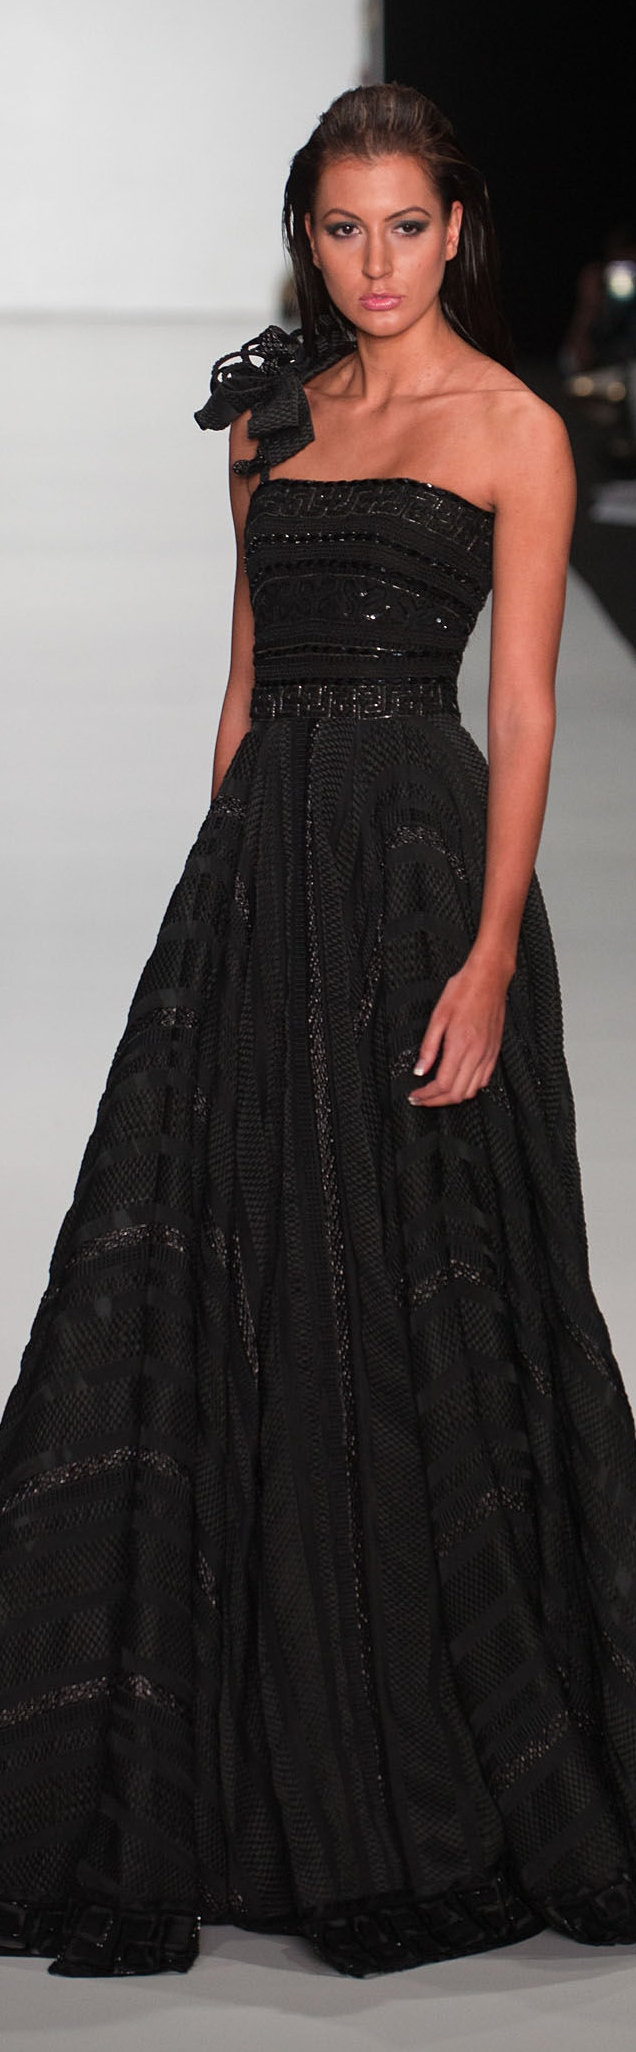 Tony Ward Couture ~ Miss Universe 2013, Moscow